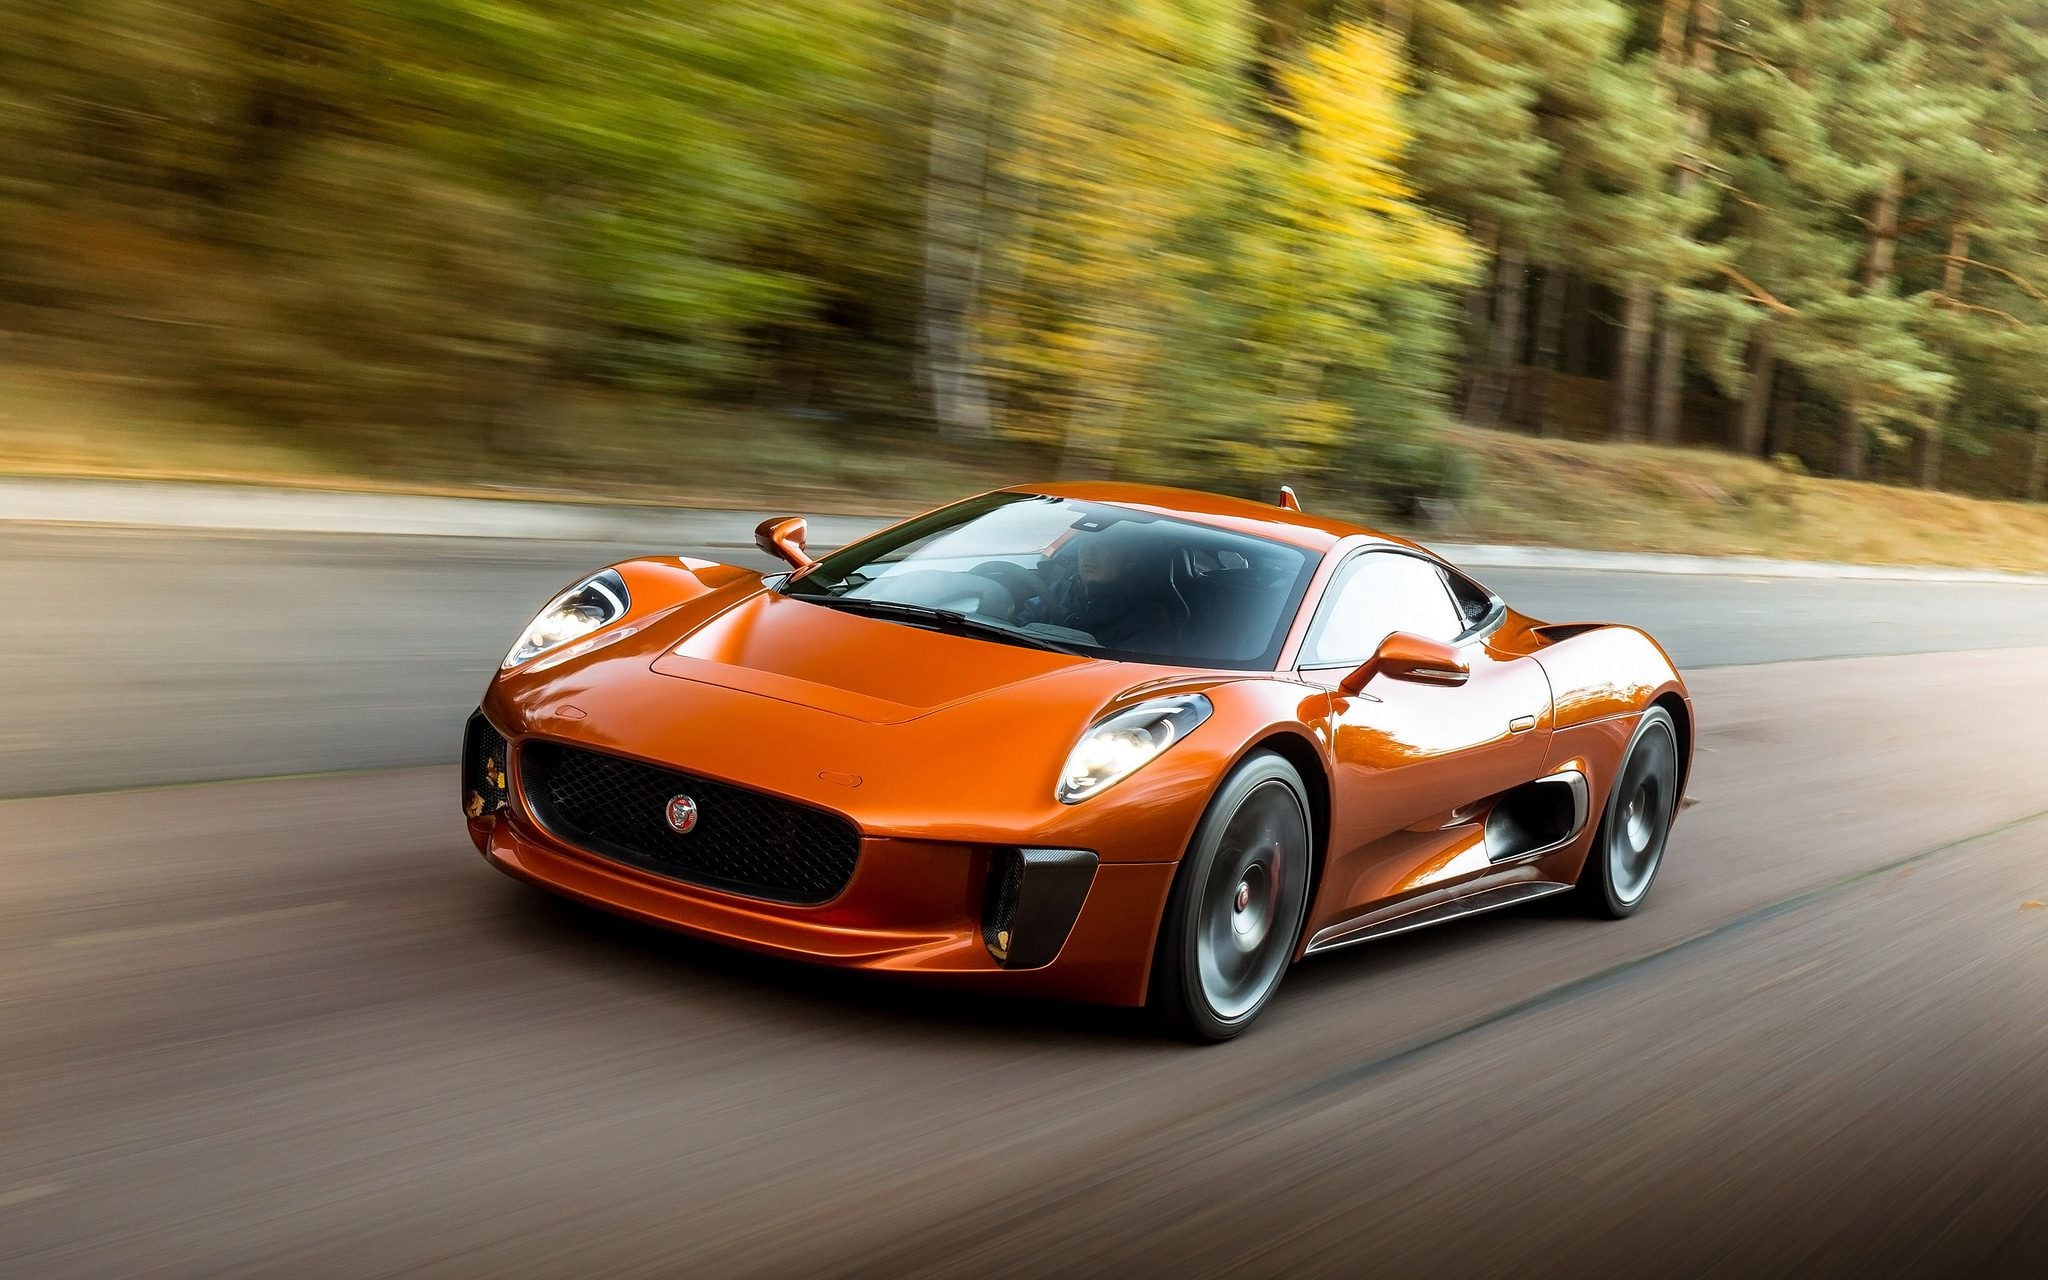 Jaguar C X75 Wallpapers Hd High Quality Download